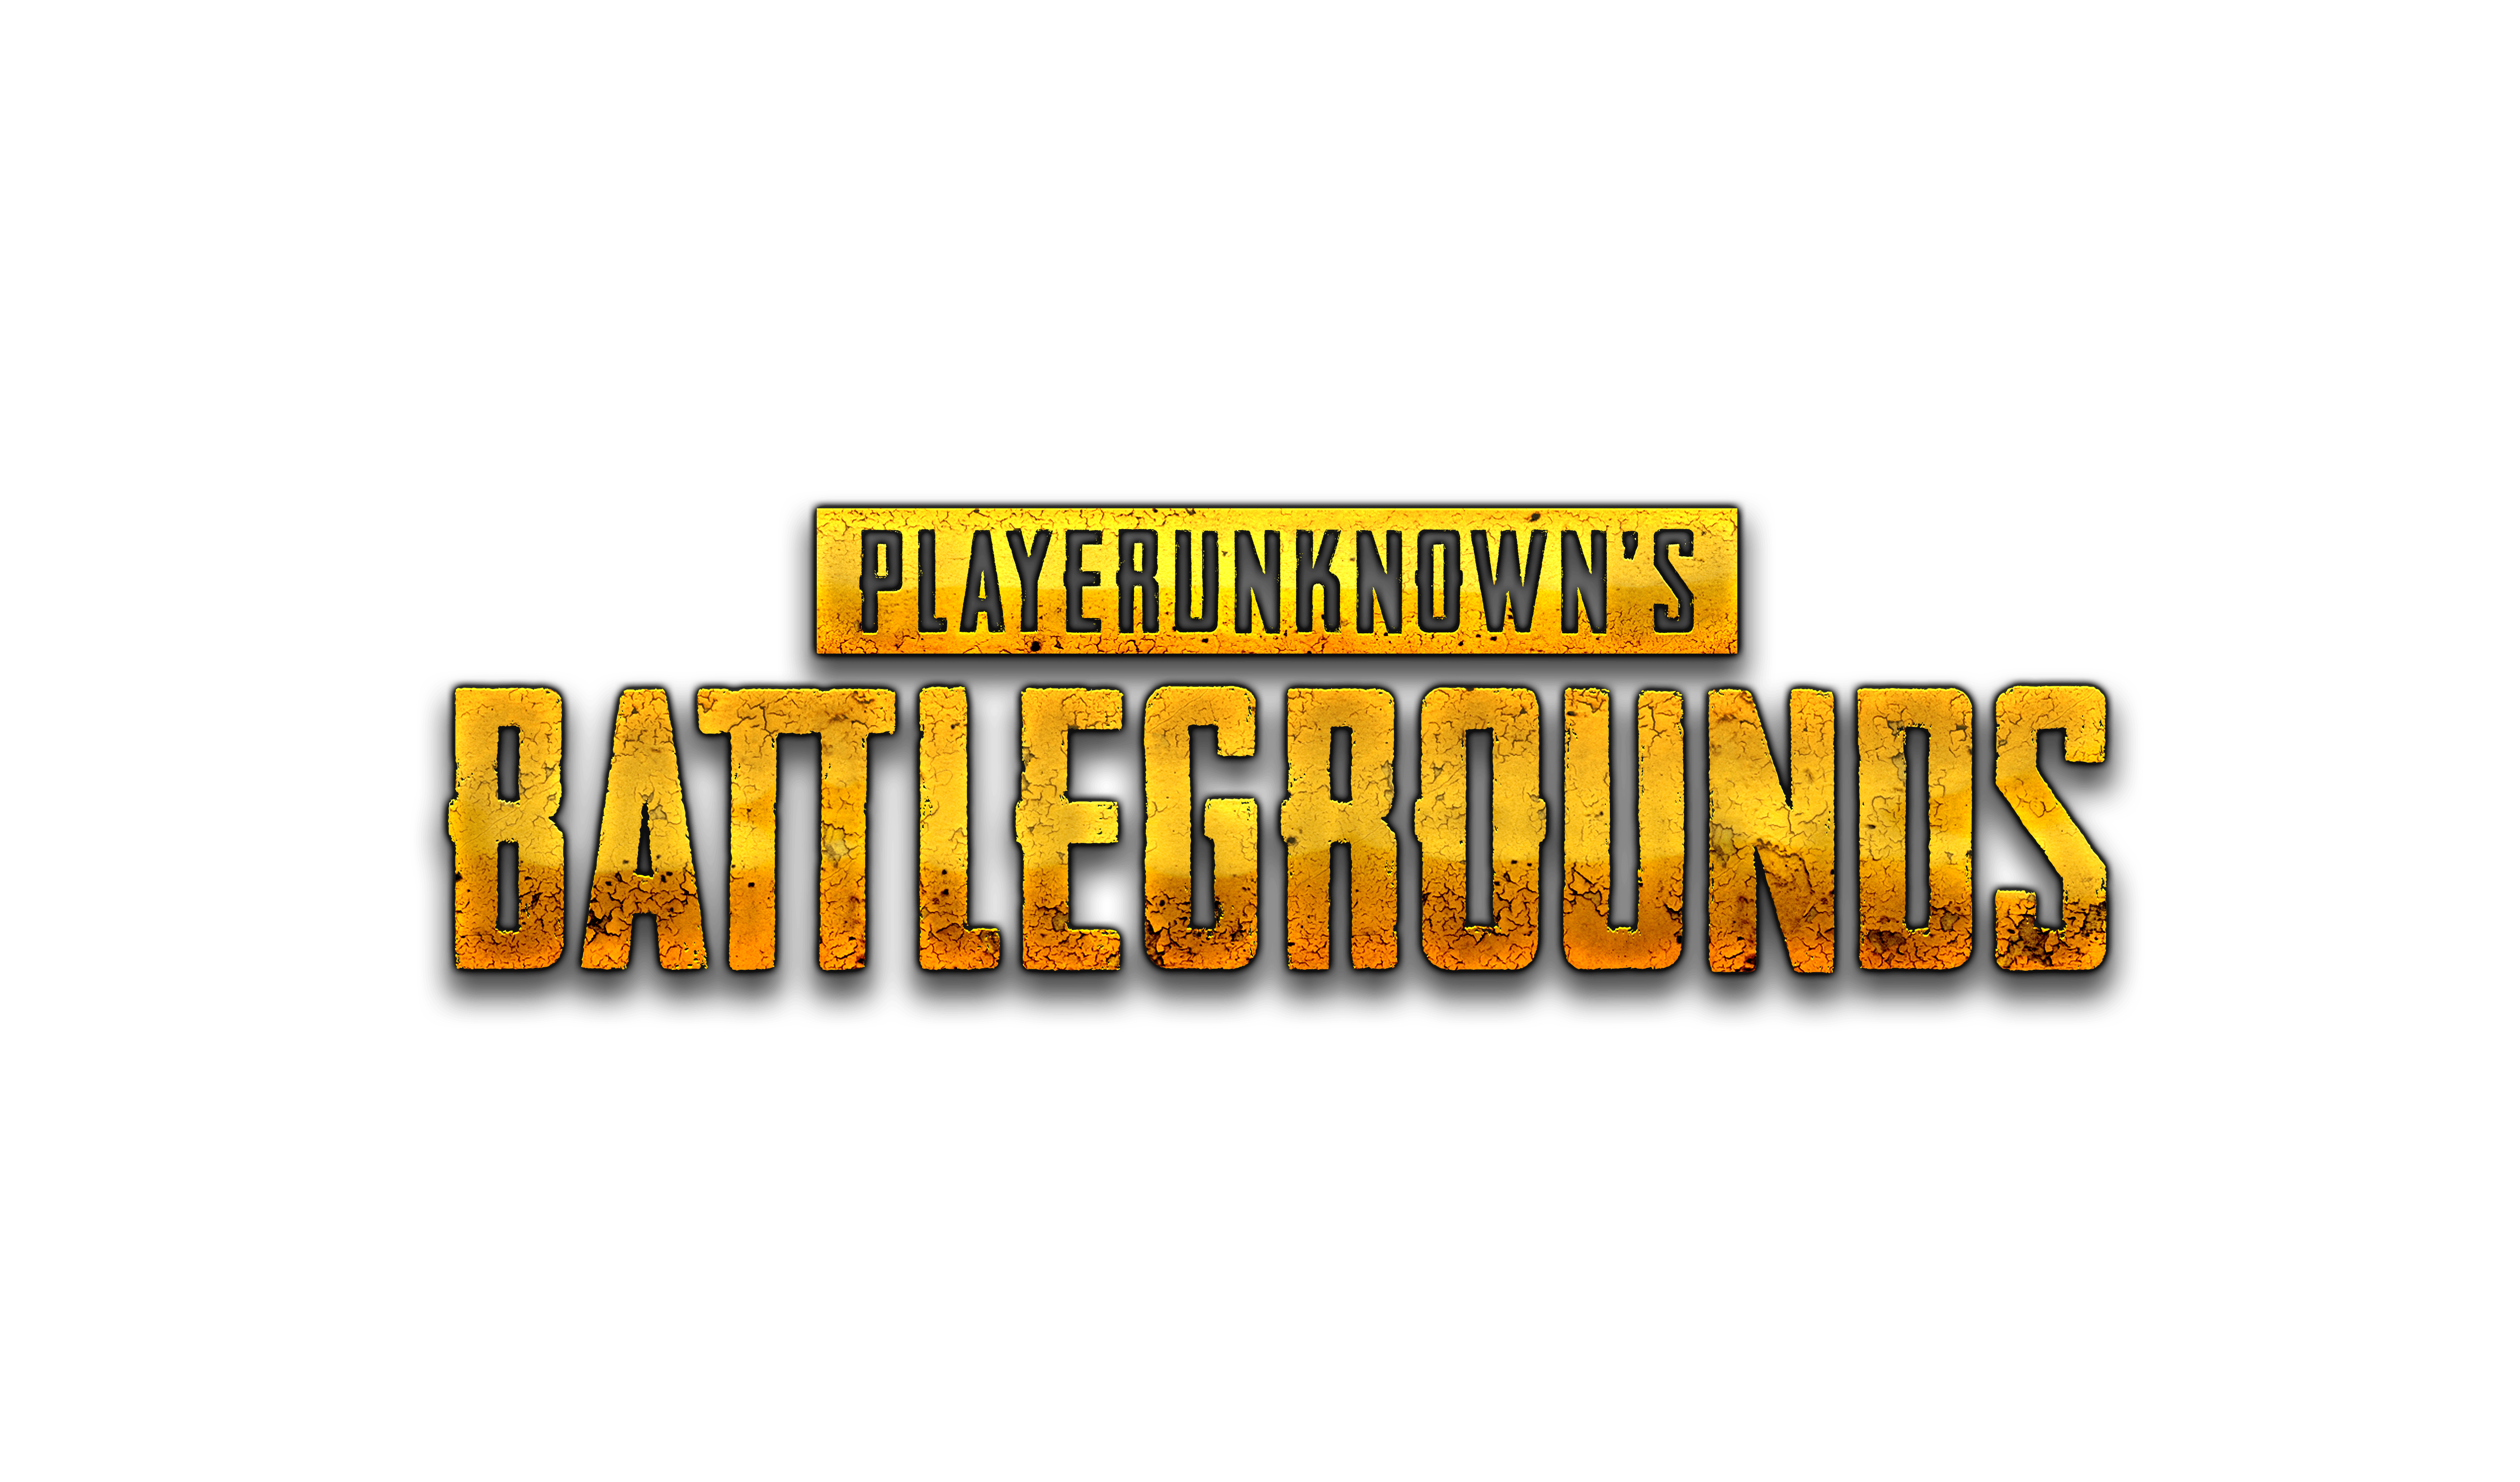 Playerunknown's Battlegrounds Logo (pubg) PNG Image Png